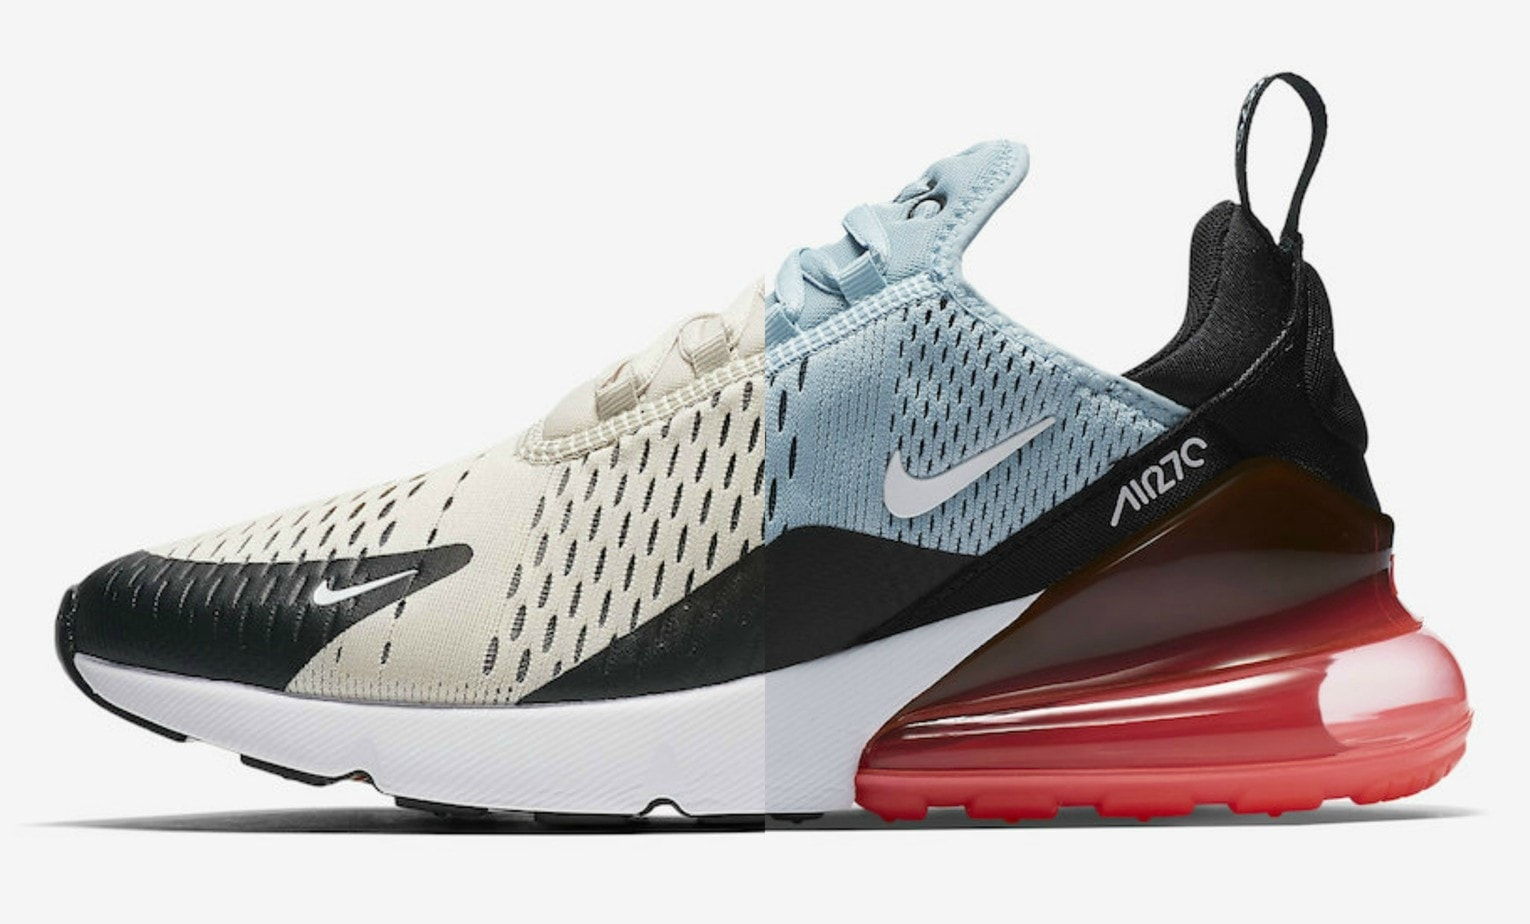 The new Nike Air Max 270 has already been seen in an enormous berth of  colorways. Now, the model will be releasing soon in Light Bone and Ocean  Bliss.